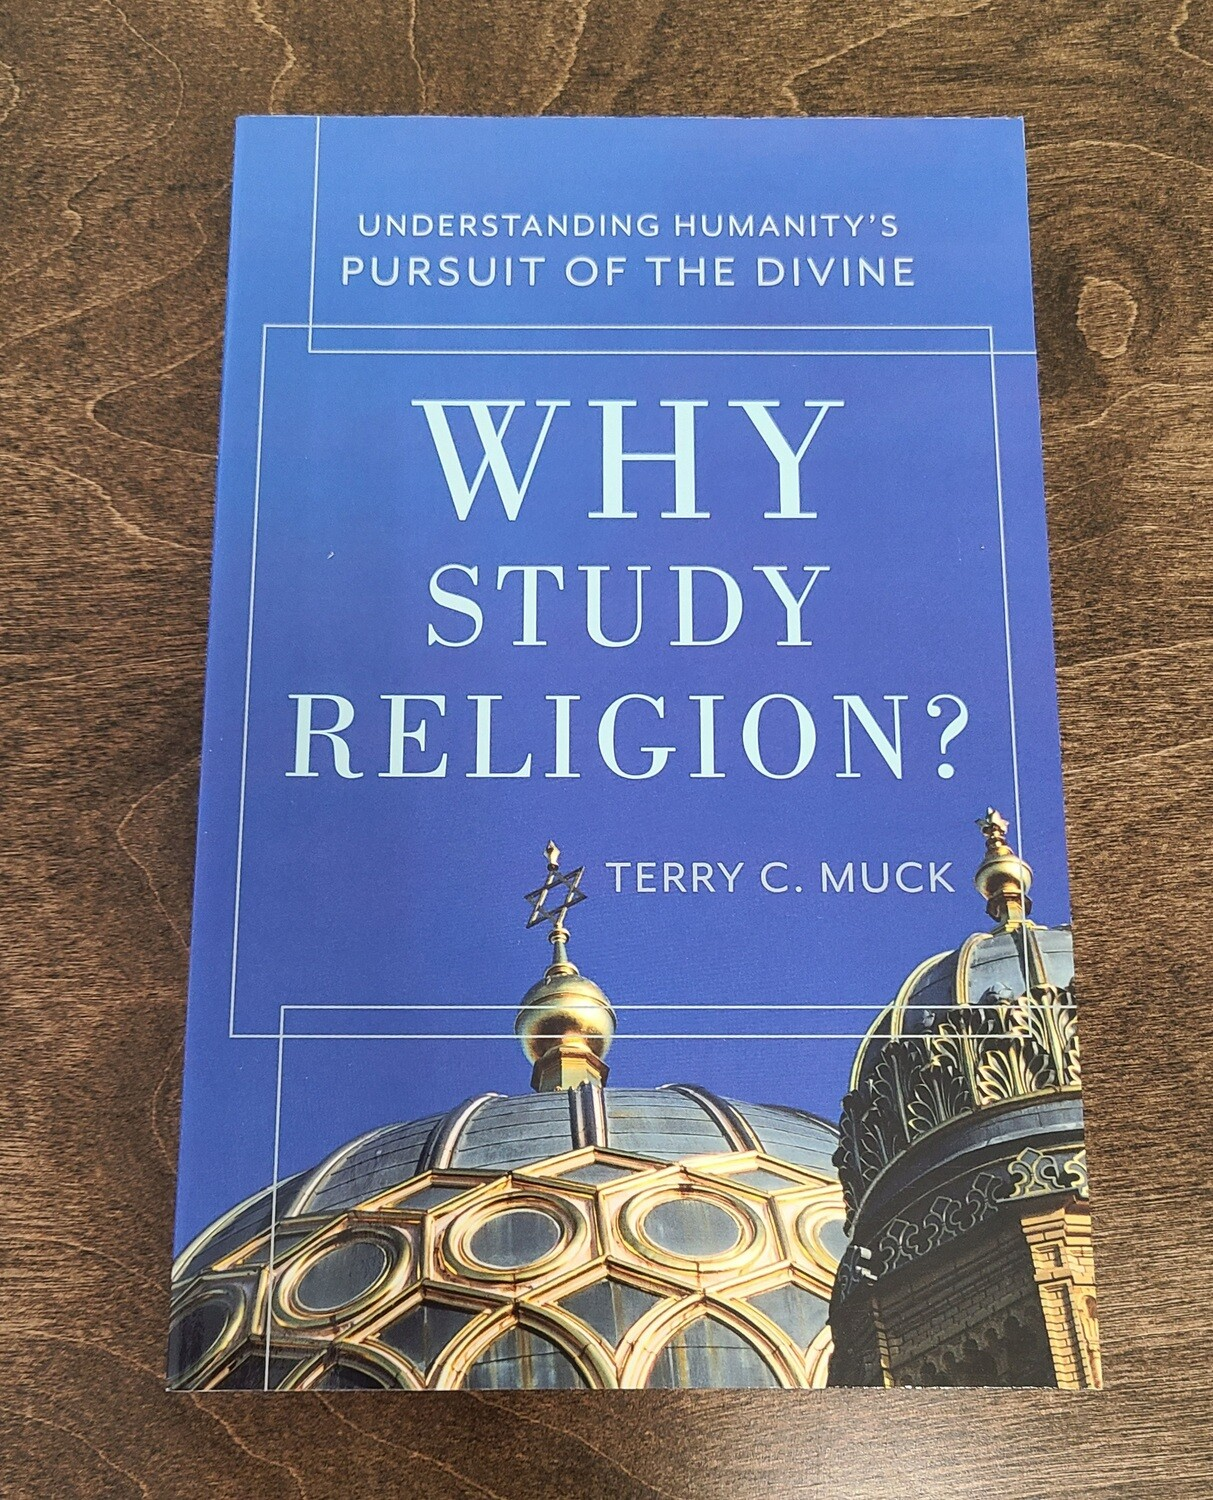 Why Study Religion? by Terry C. Muck